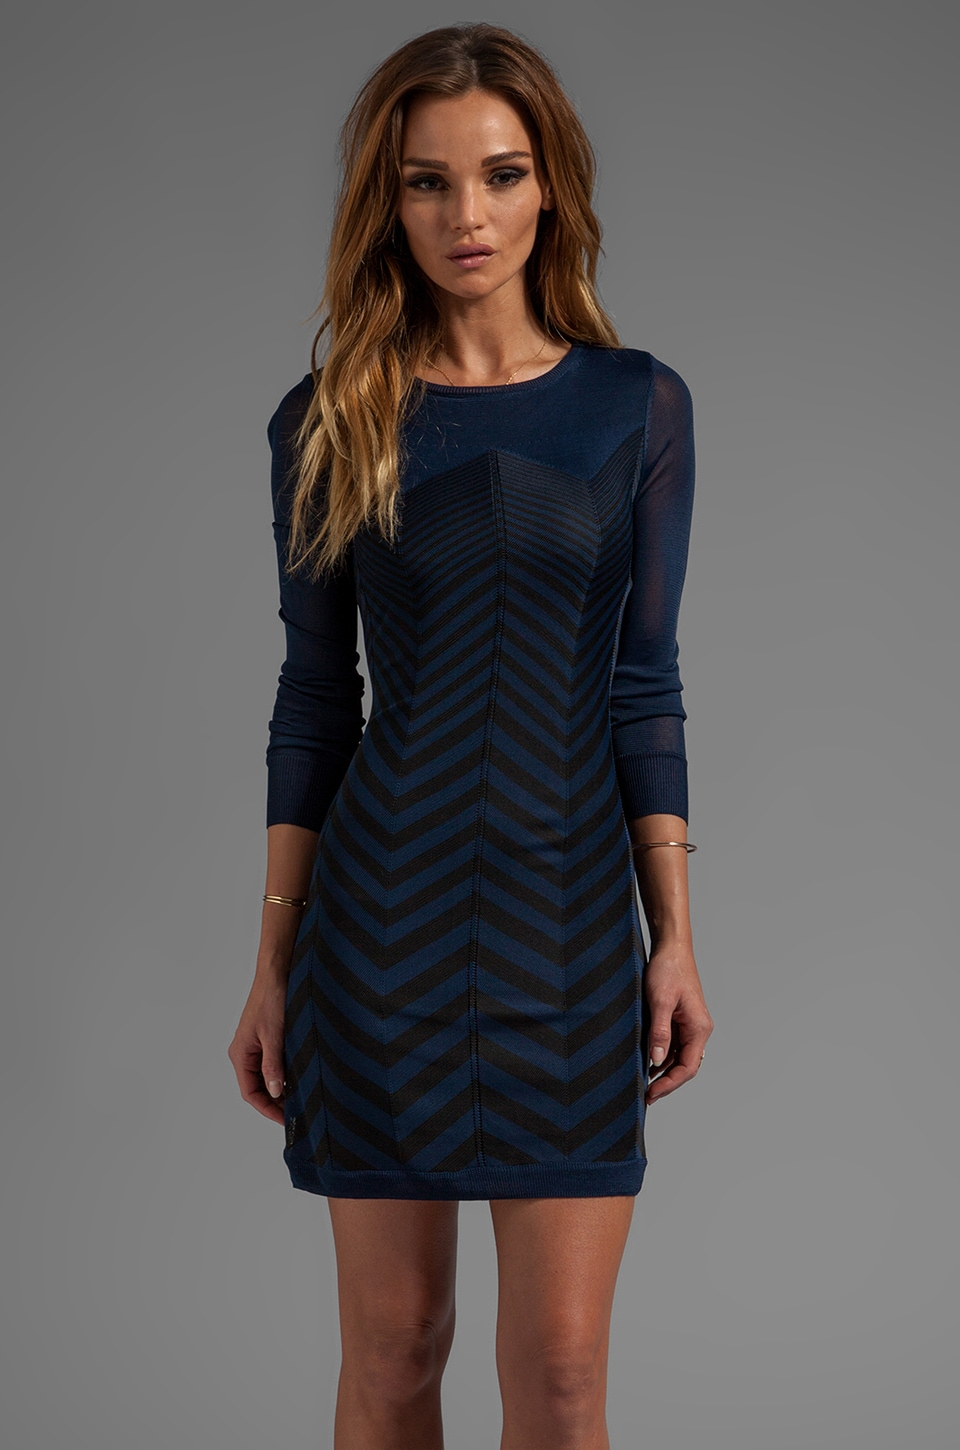 Trina Turk Sharyn Sweater Dress in Midnight